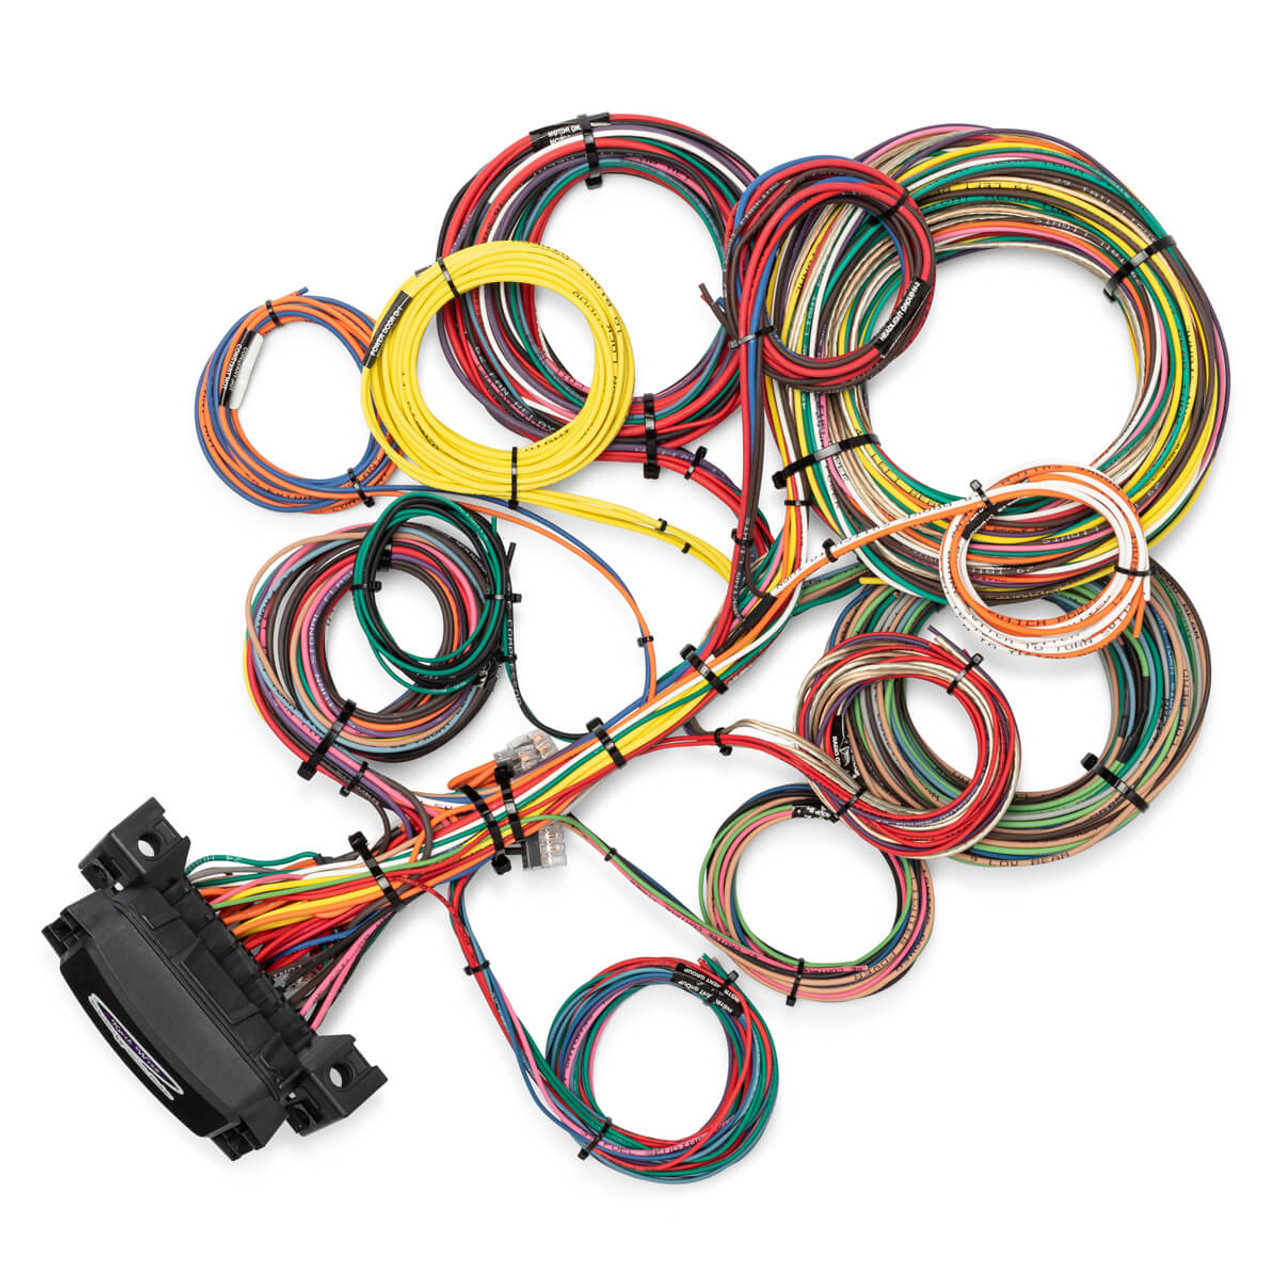 hight resolution of 26 circuit waterproof wire harness